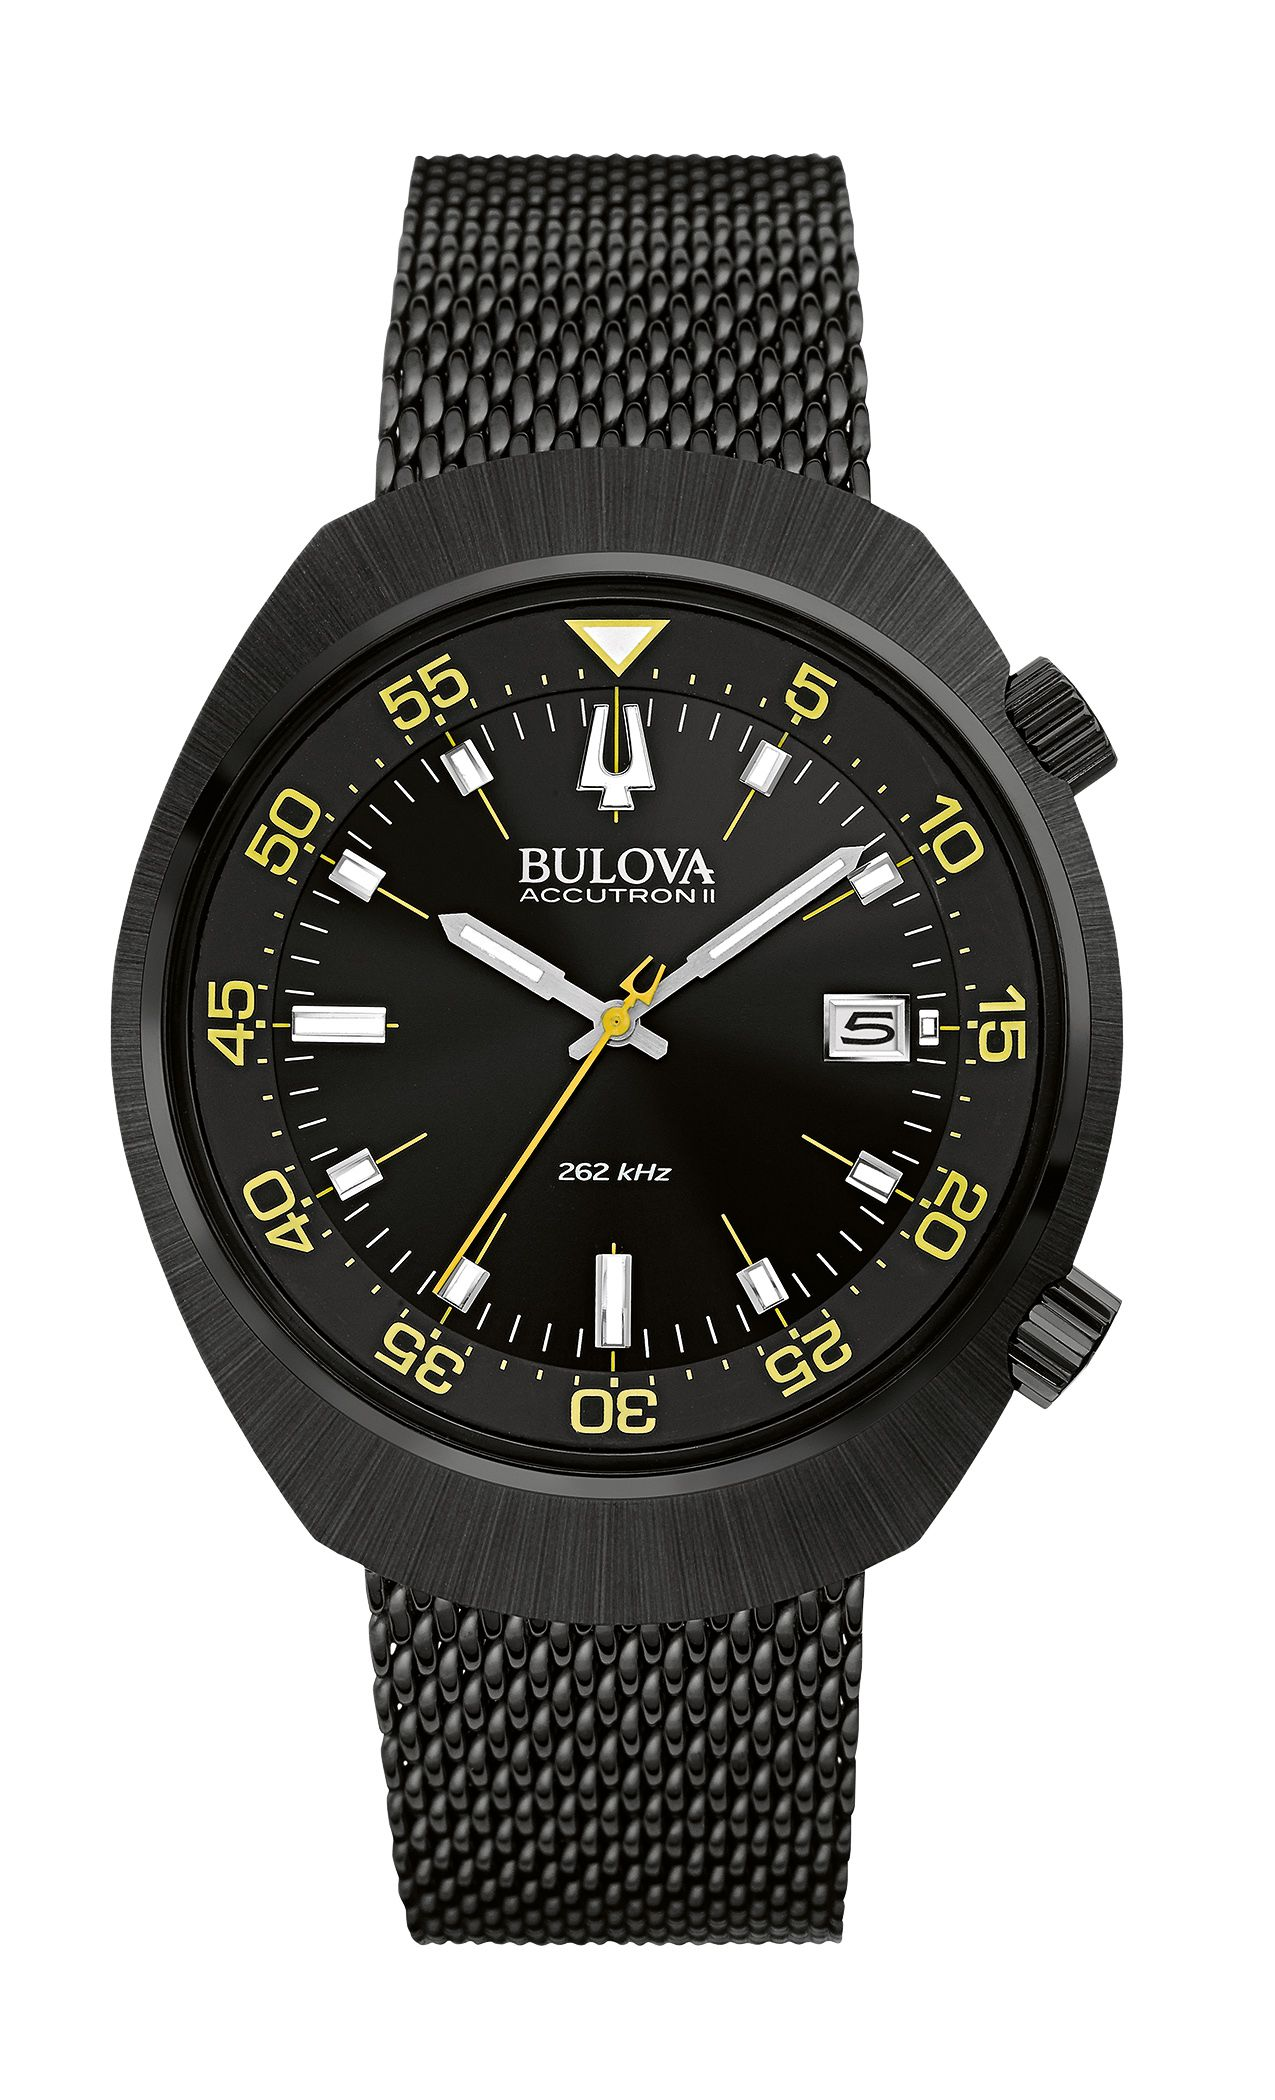 dating bulova accutron watches My bulova only has a3 unlike models from the s, these s ladies' watches do not dating bulova watch serial number a case date code, so the only way to date the watch is by the movement symbol.